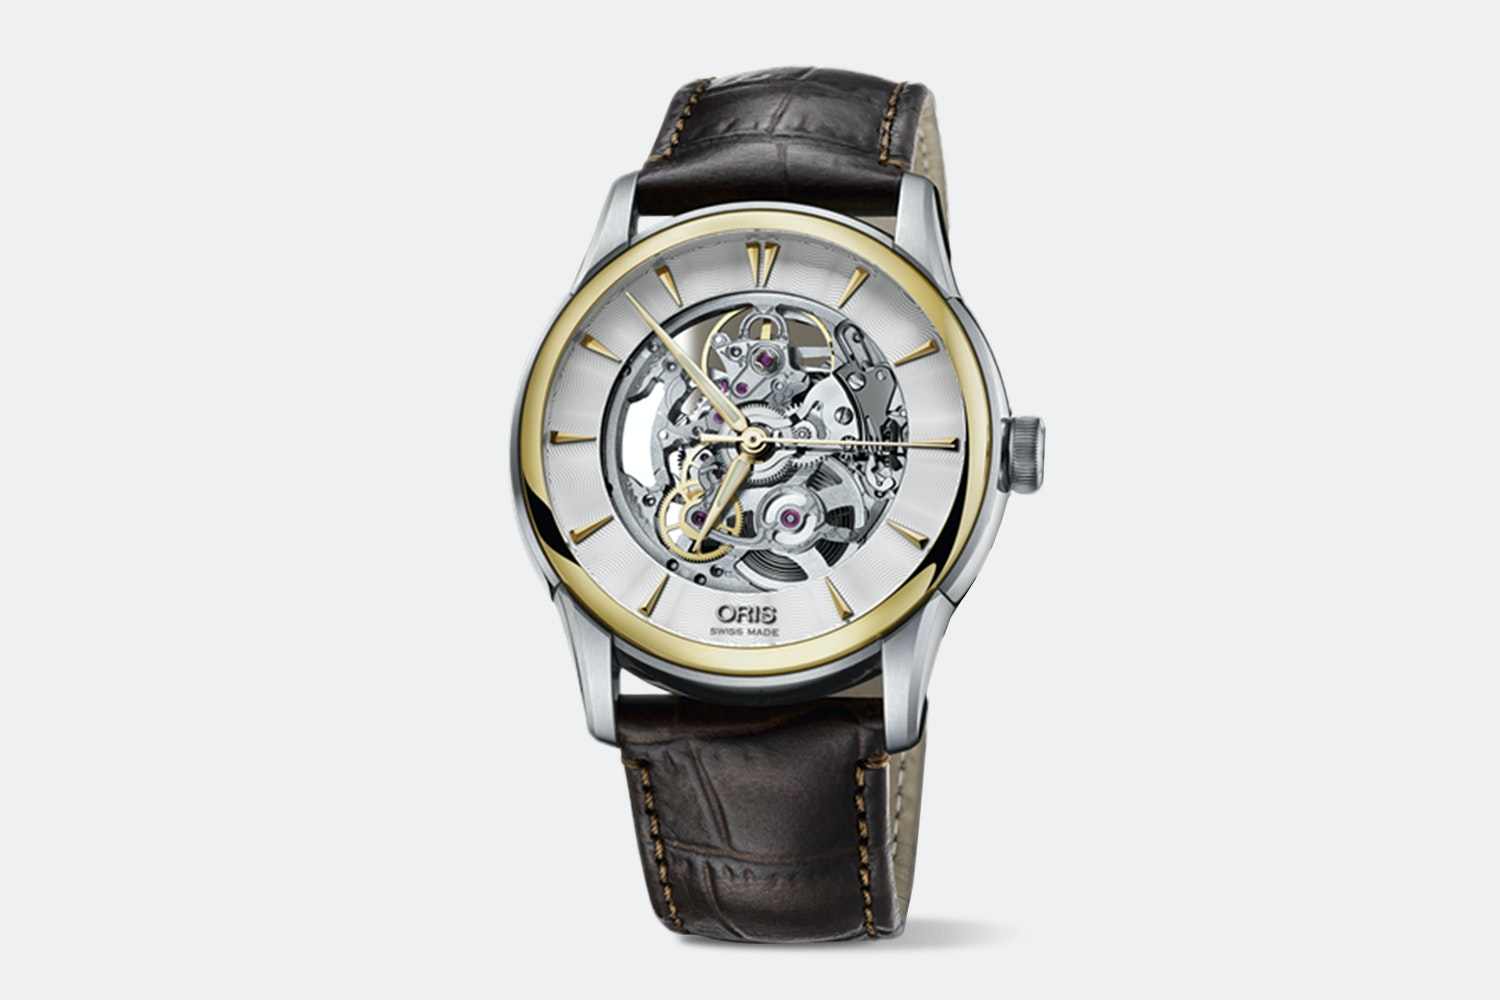 Oris Artelier Translucent Skeleton Automatic Watch